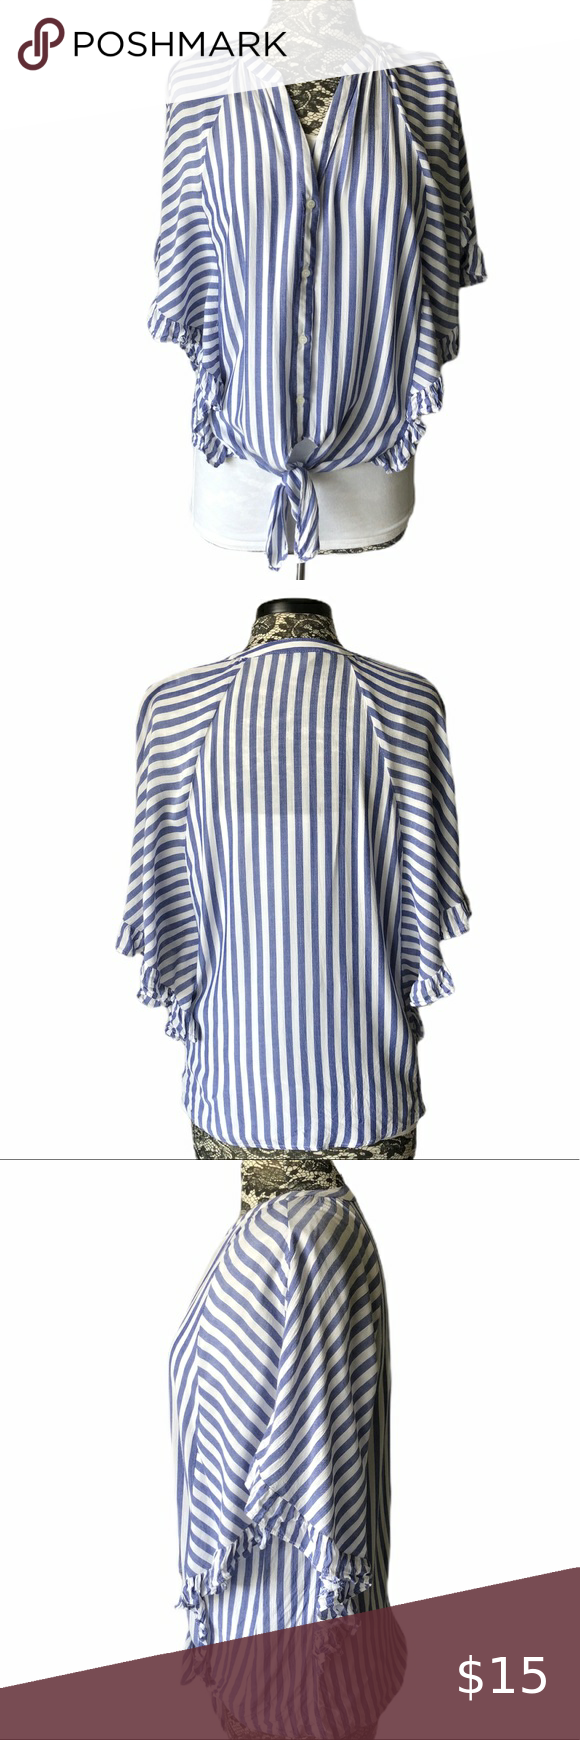 Belle Sky Striped Blouse Blue White Medium Blue And White Striped Blouse With Oversized Shirt Sleeves Button Front Blue Striped Blouse Striped Blouse Striped